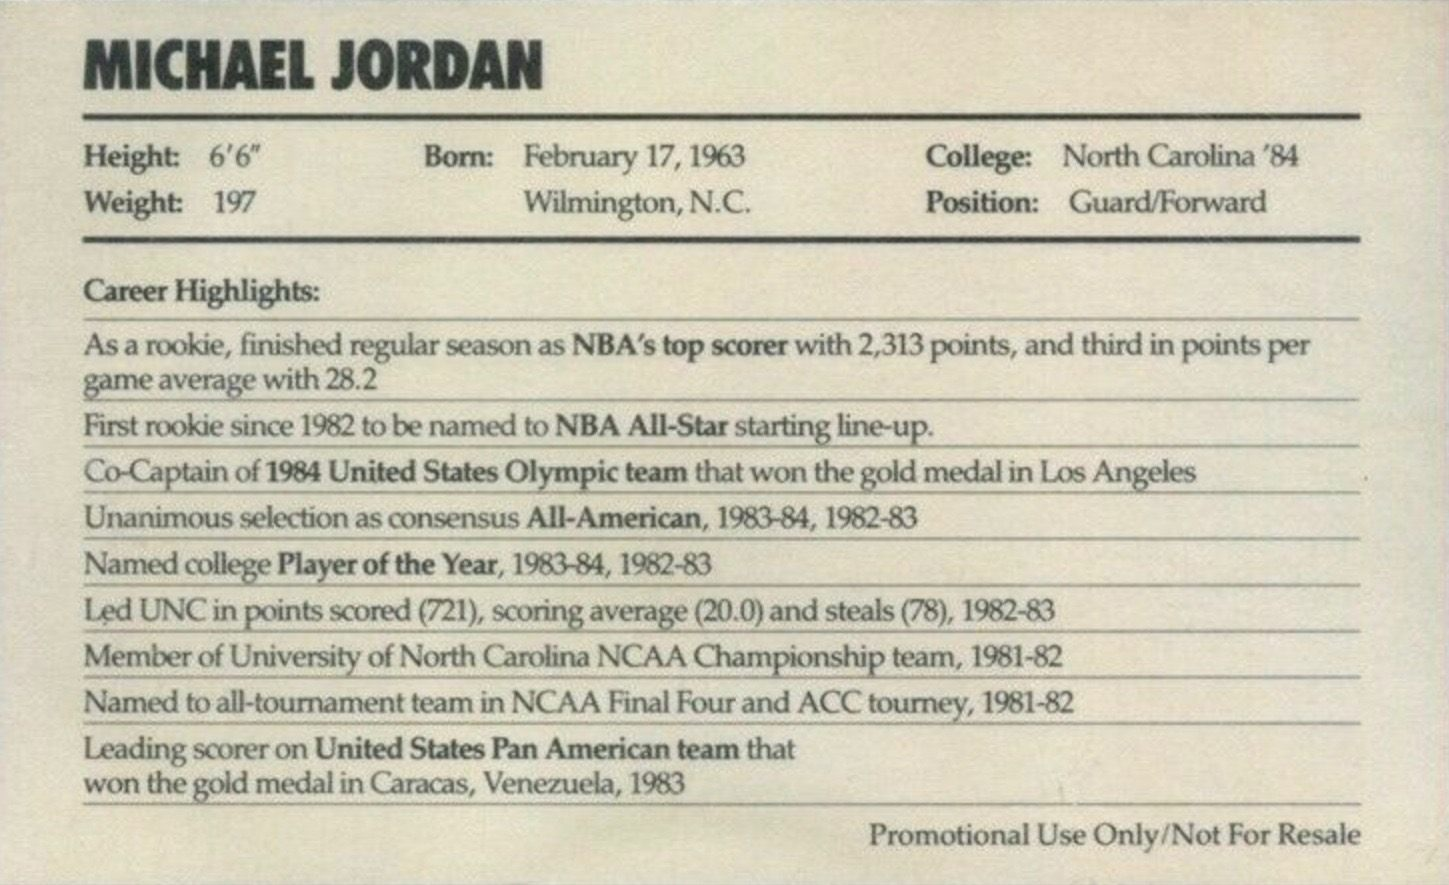 1985 Nike #2 Michael Jordan Basketball Card Reverse Side With Personal Information and Career Highlights